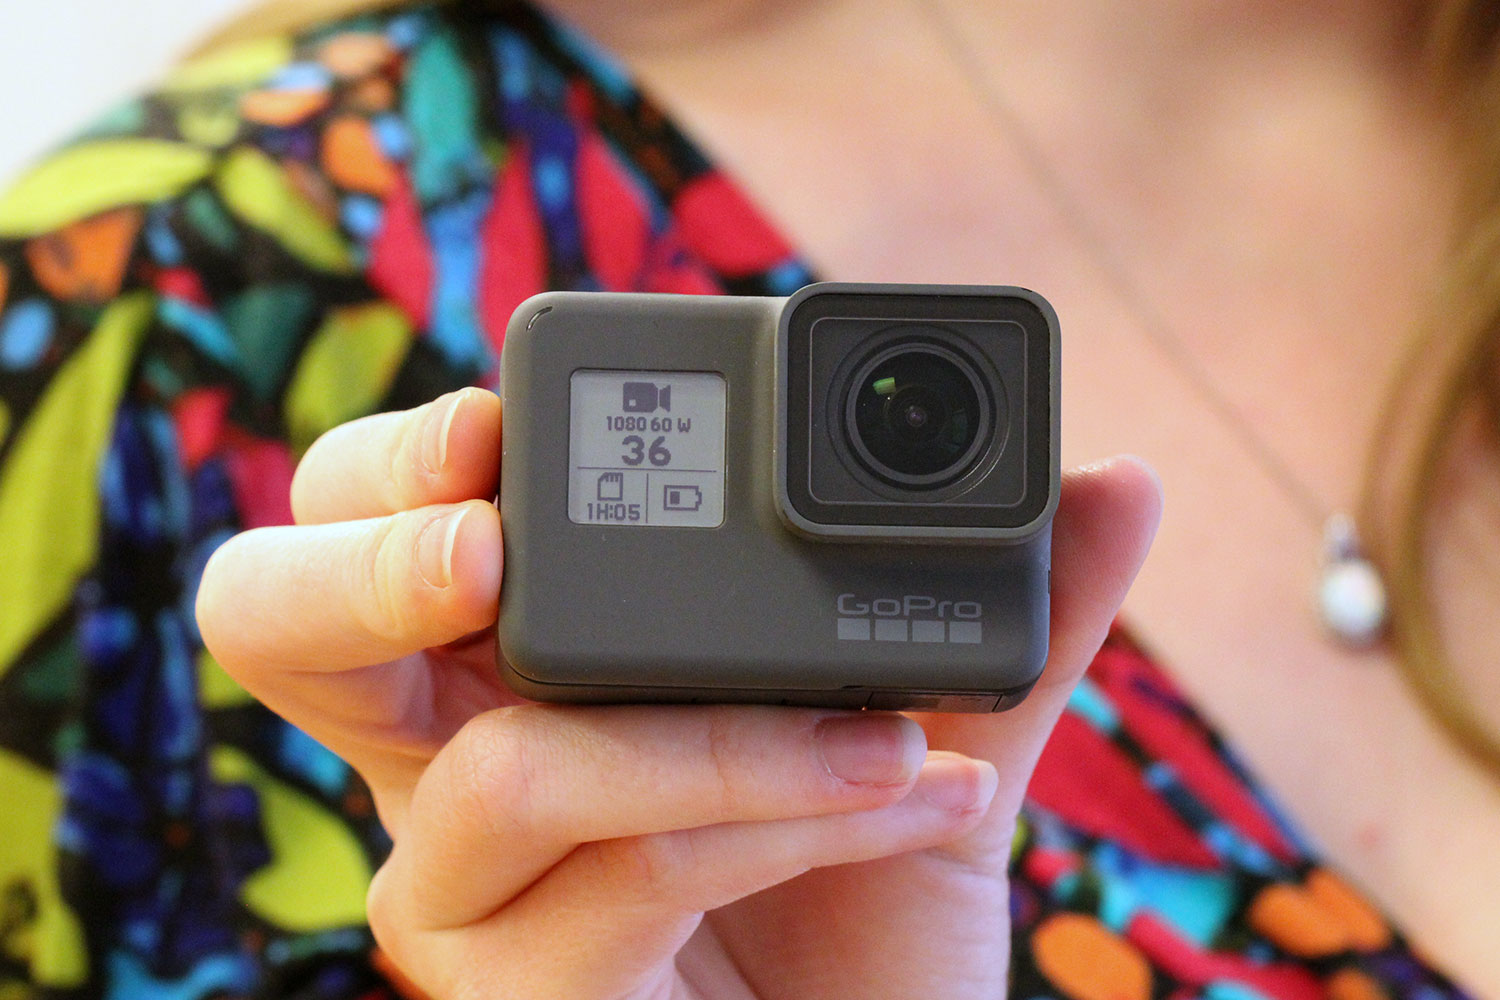 GoPro Wants You to Trade Your Old Camera for a New One